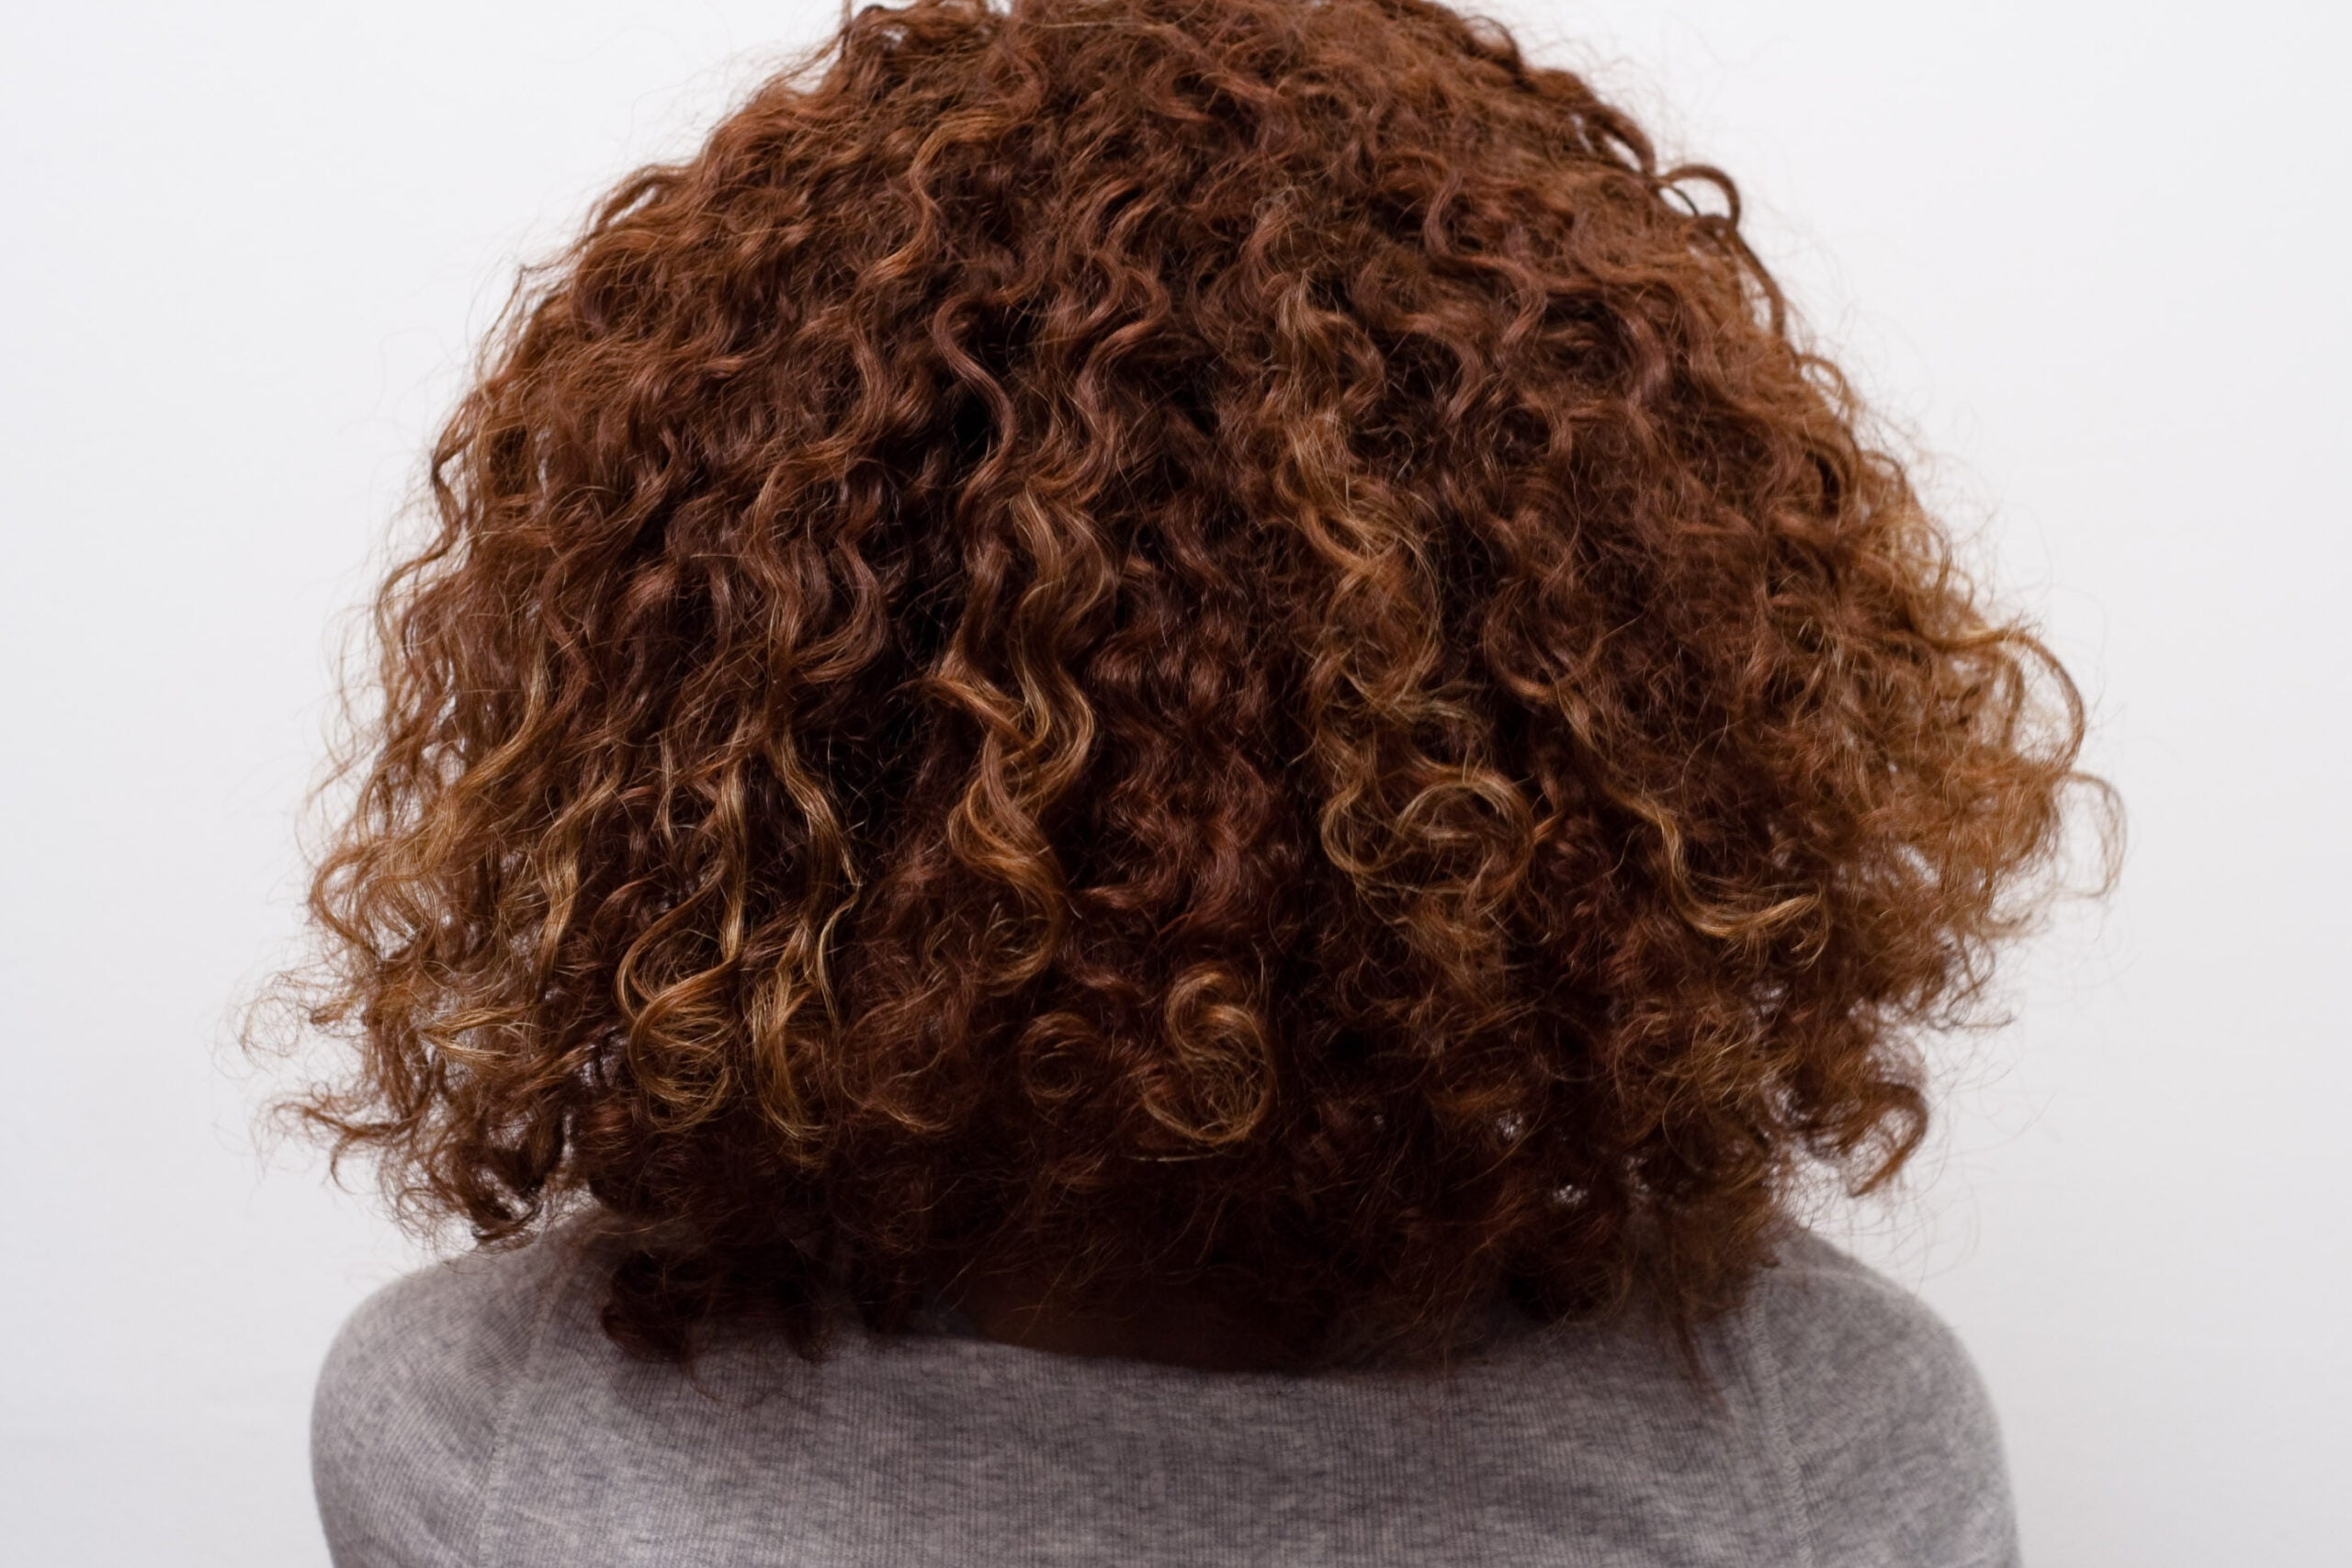 Science Wants To Help You Straighten Your Hair Without Frying It